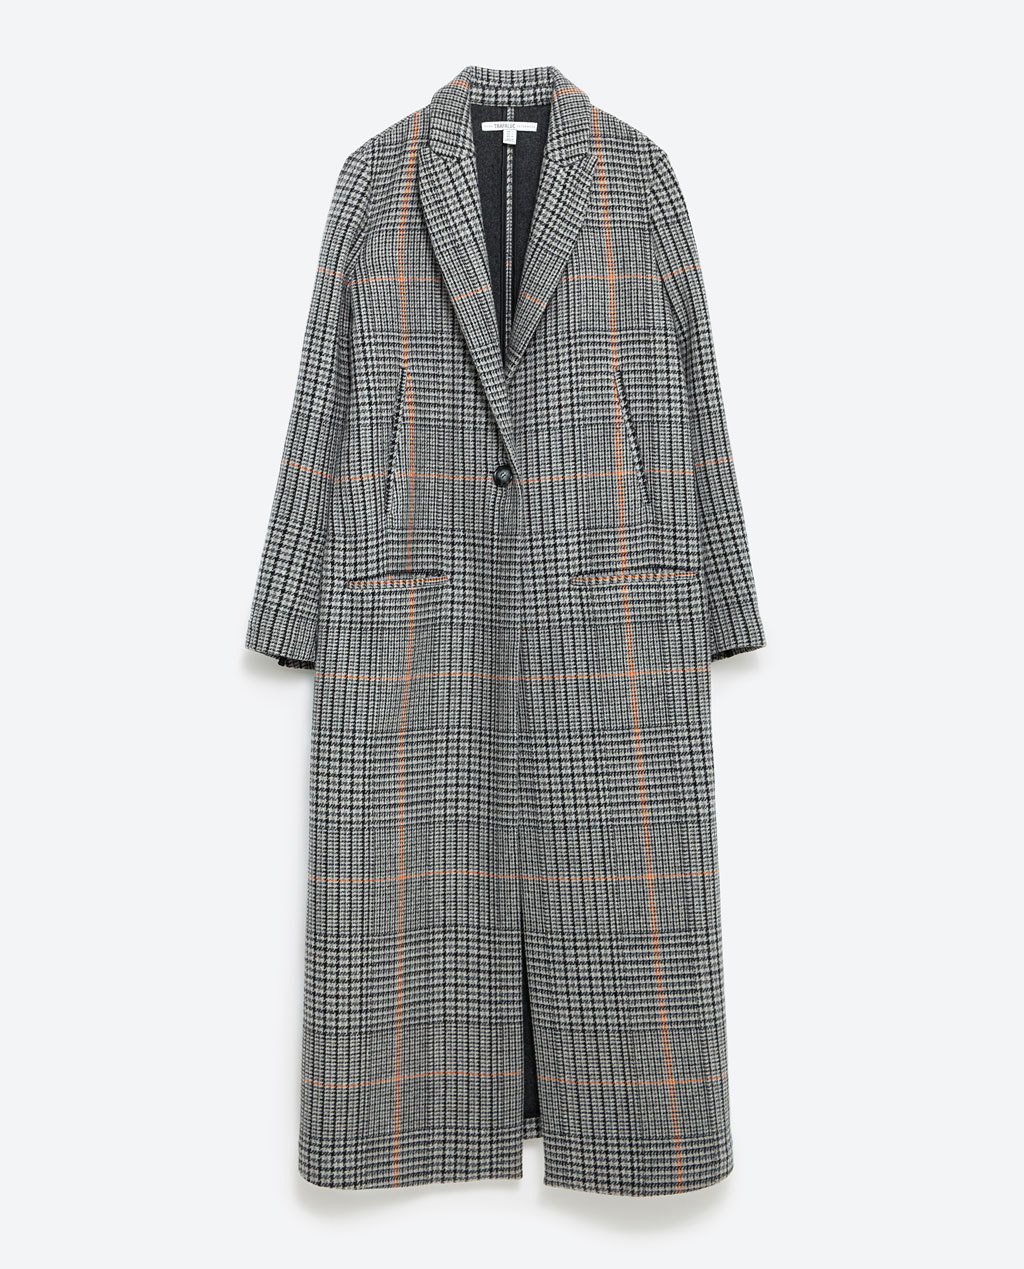 Long Coat - pattern: checked/gingham; style: single breasted; collar: standard lapel/rever collar; length: calf length; secondary colour: nude; predominant colour: light grey; occasions: casual, creative work; fit: straight cut (boxy); sleeve length: long sleeve; sleeve style: standard; collar break: medium; pattern size: standard; texture group: woven light midweight; season: a/w 2015